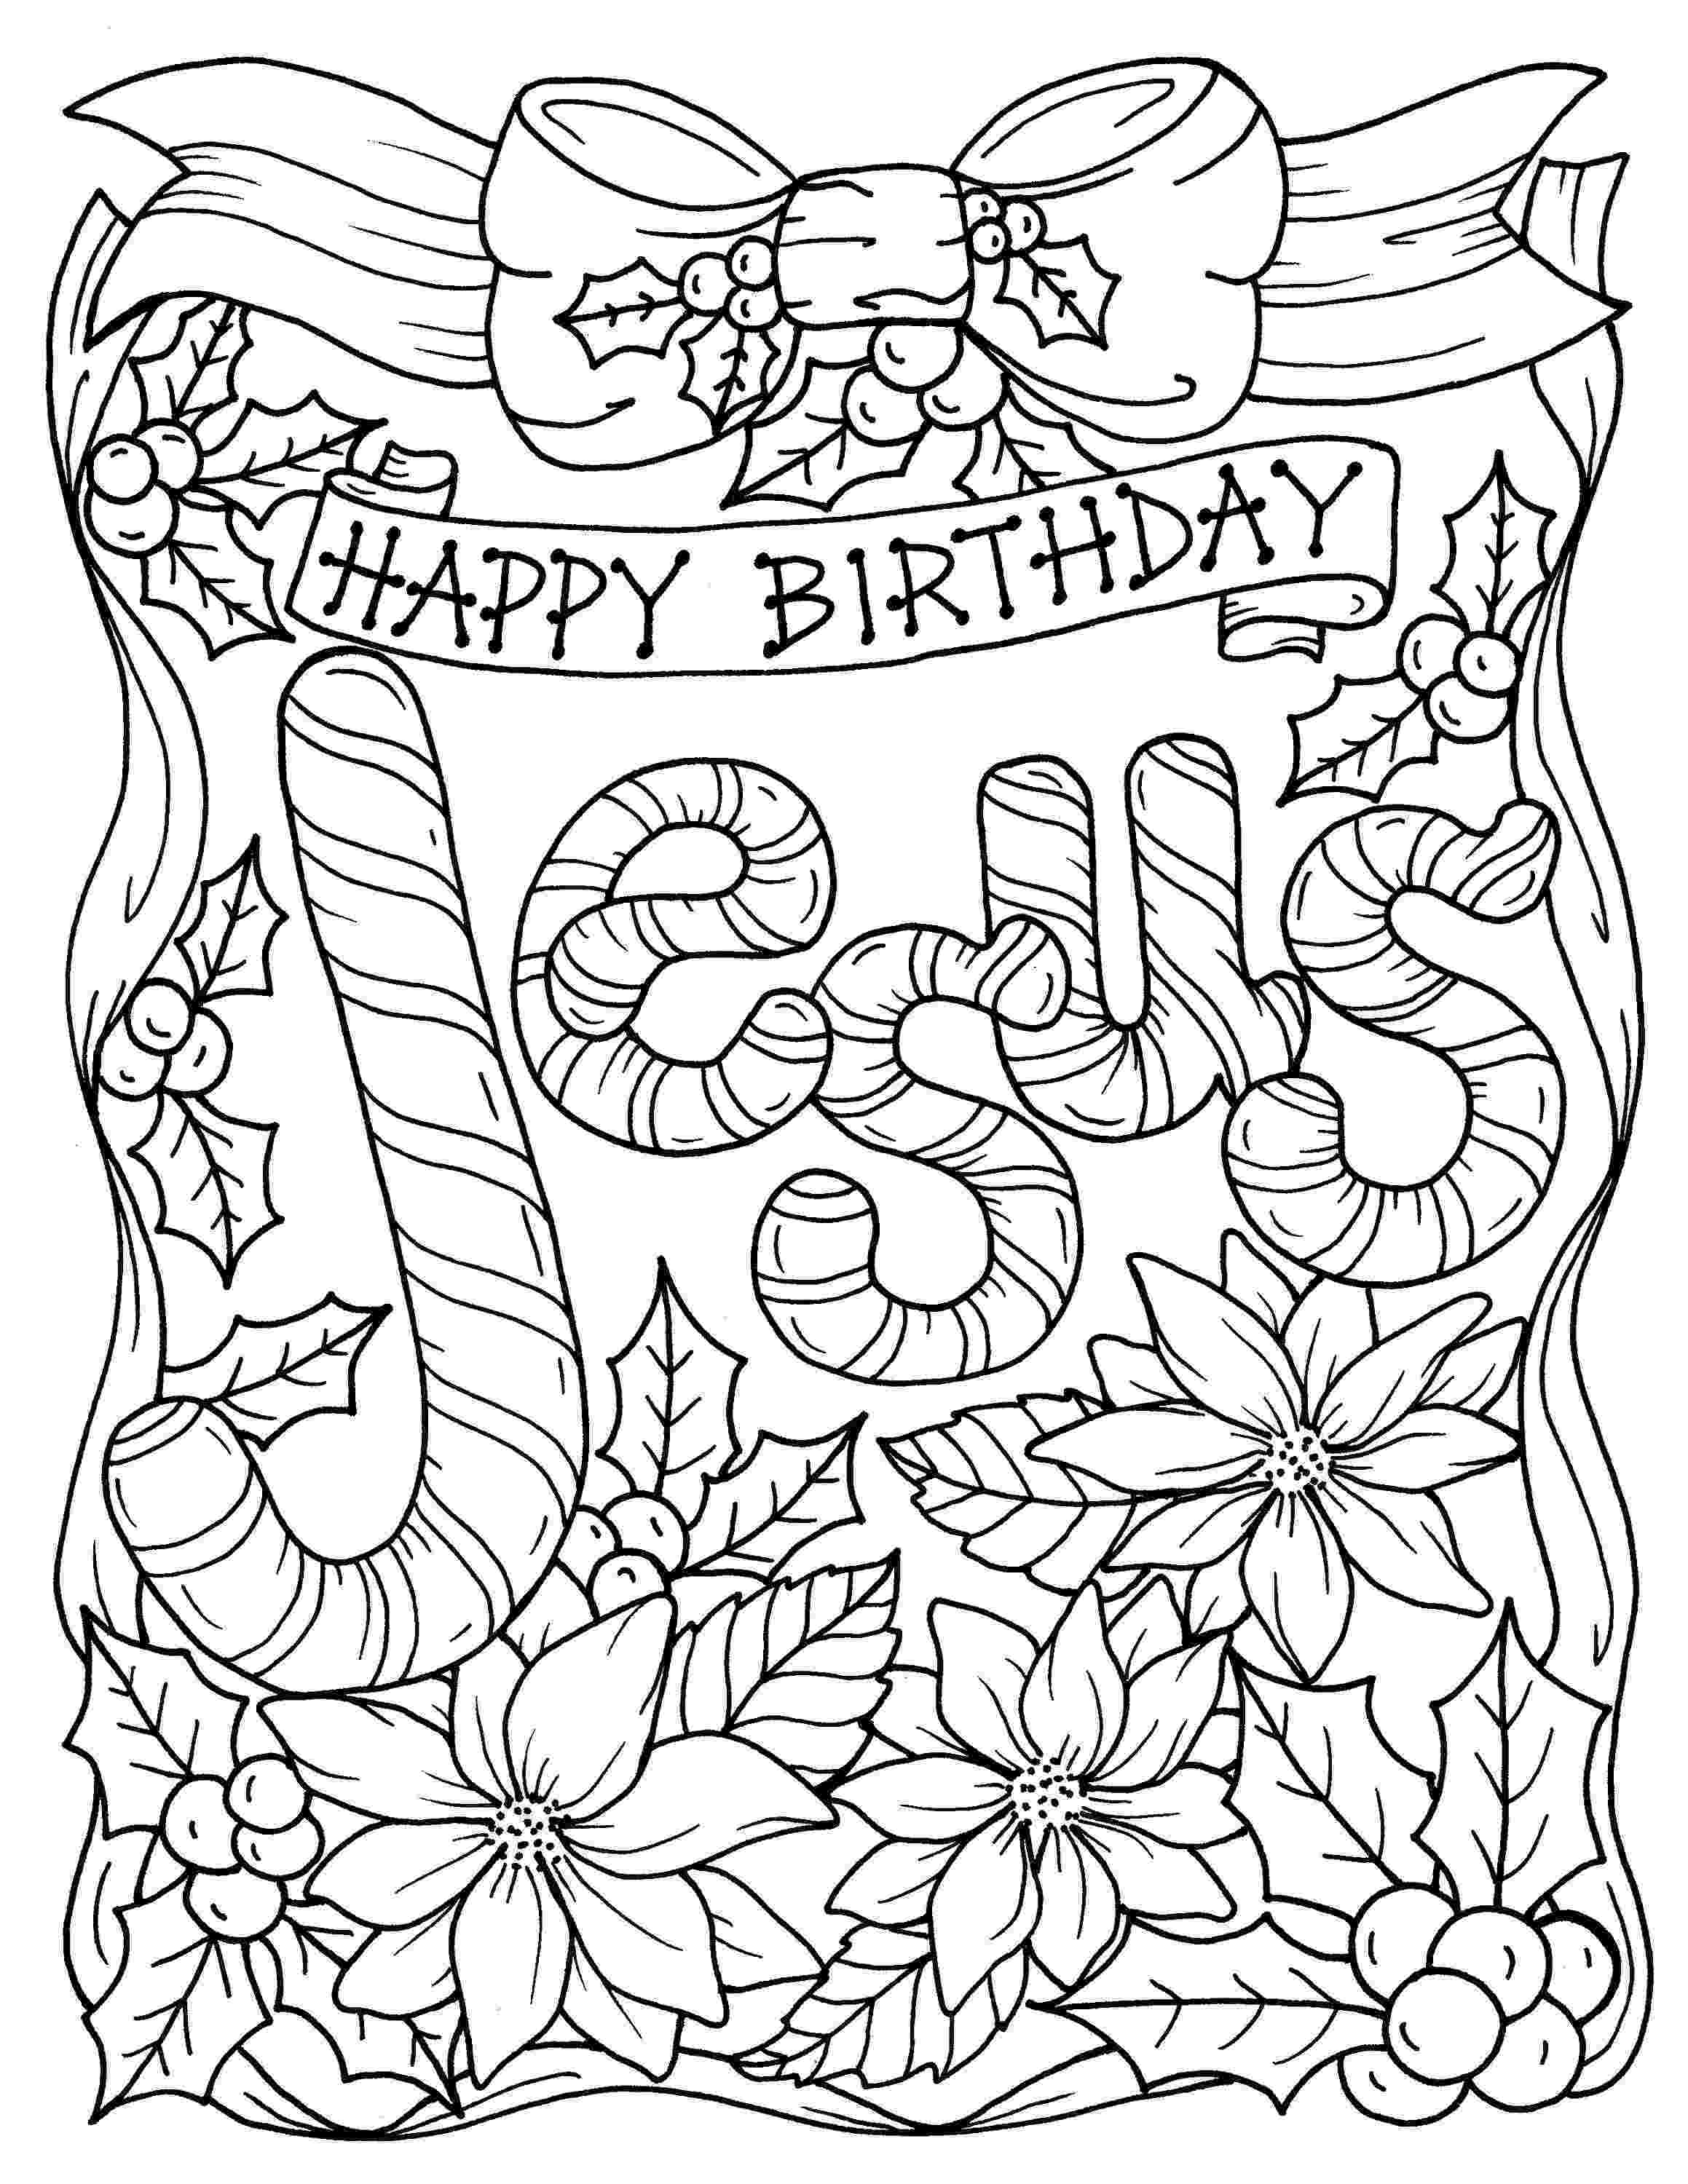 christian bible coloring pages free christian coloring pages for adults roundup bible bible coloring pages christian